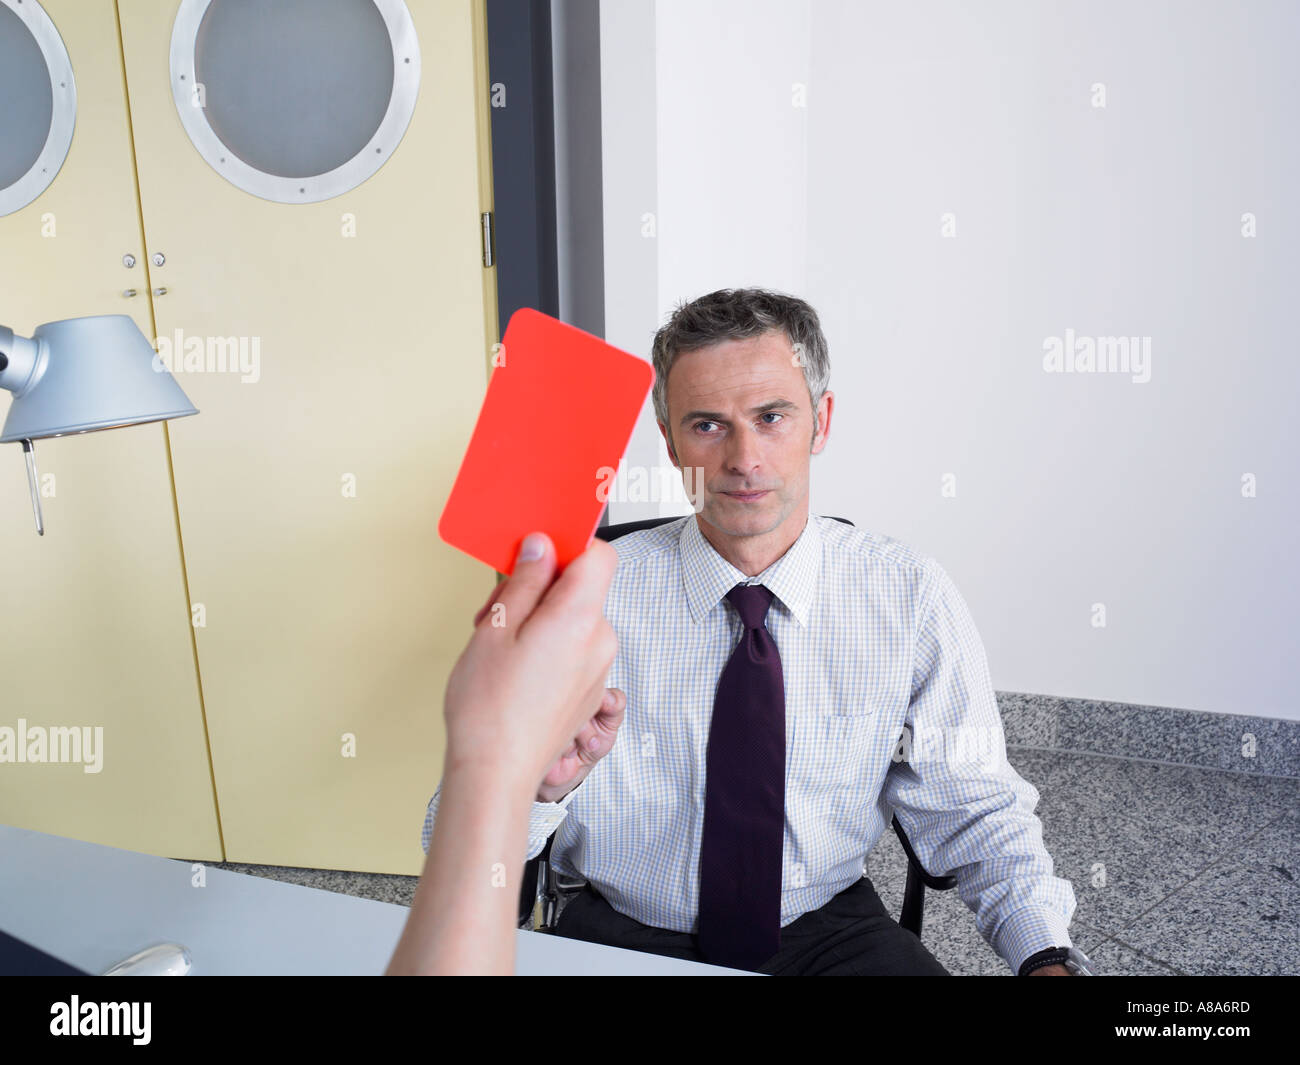 Businessman getting a red card - Stock Image